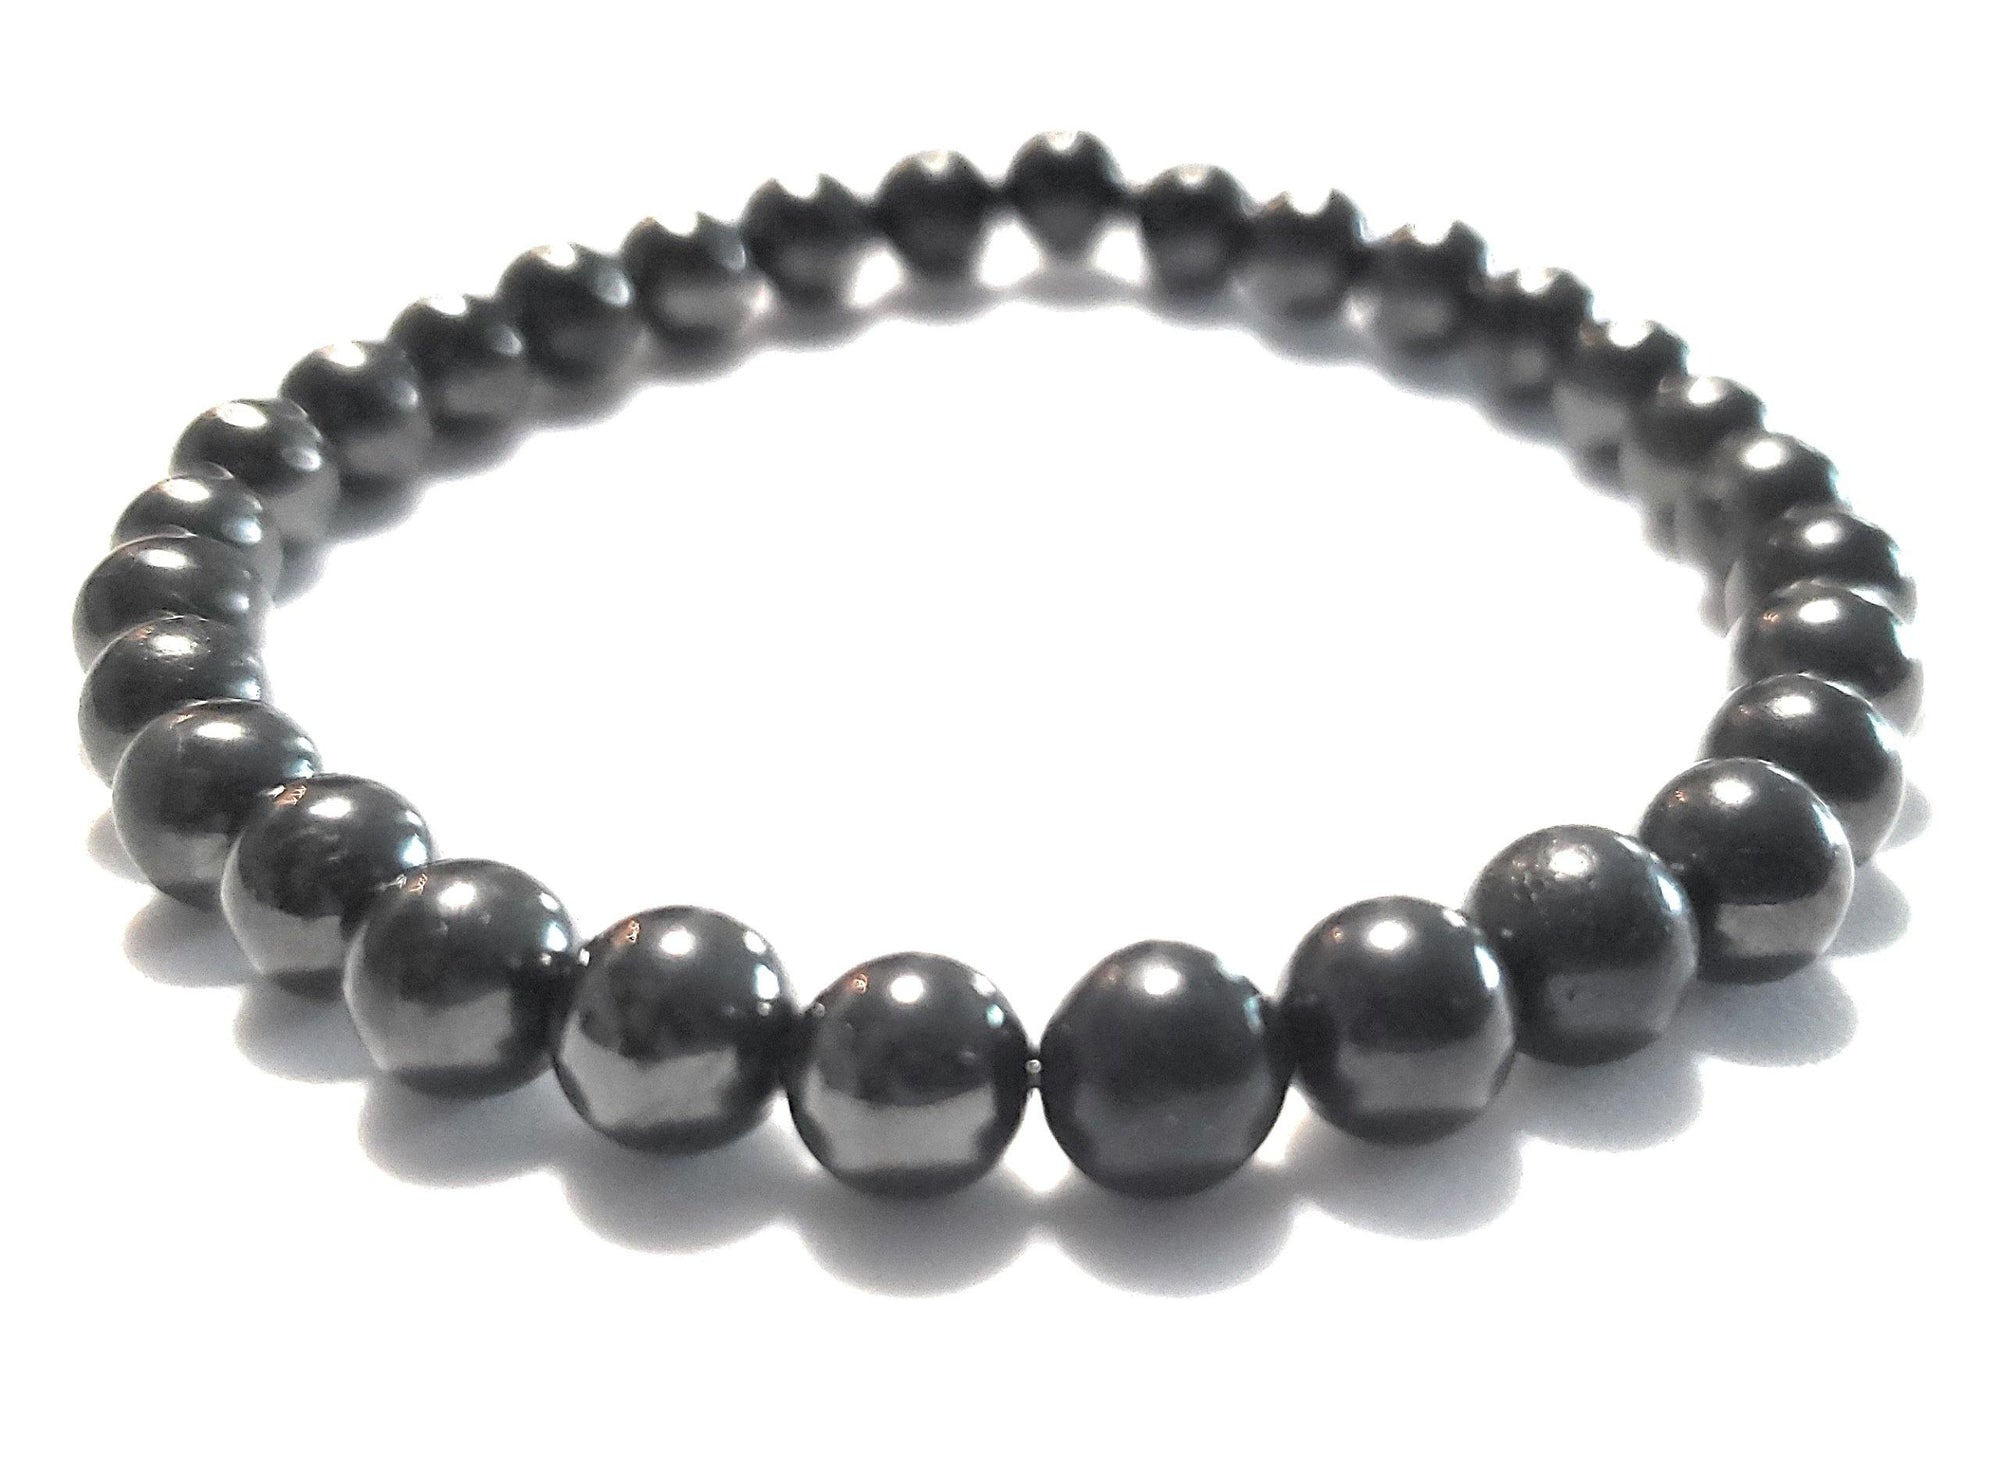 Shungite Bracelet - 6mm Beads, Adult - Karelia Creations